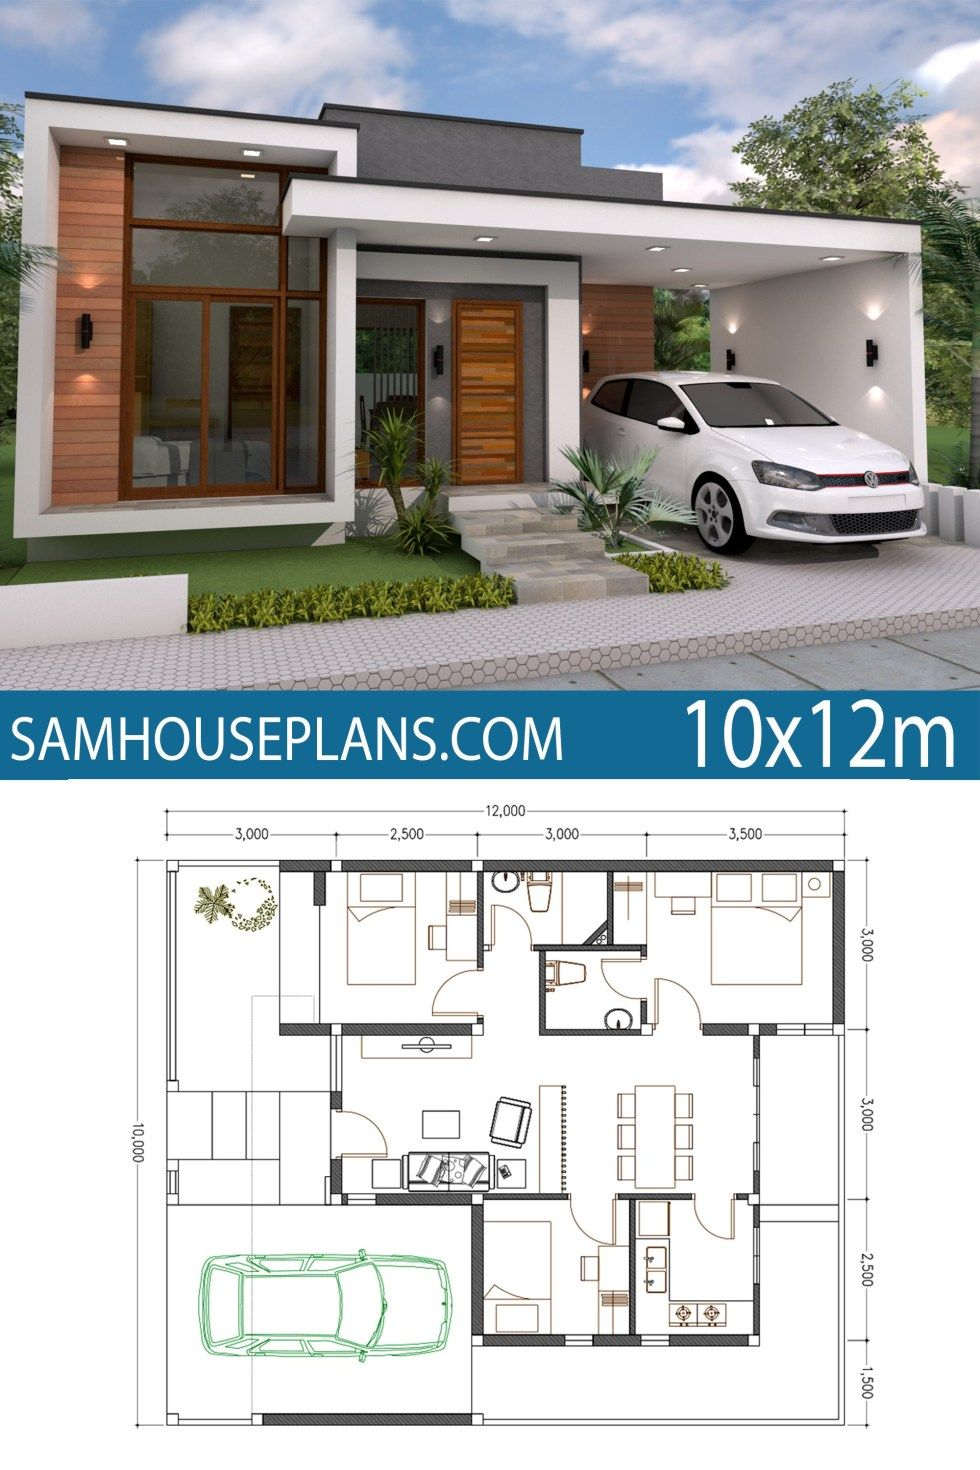 Home Plan 10x12m 3 Bedrooms Sam House Plans Simple House Design Bungalow House Plans Small House Design Plans